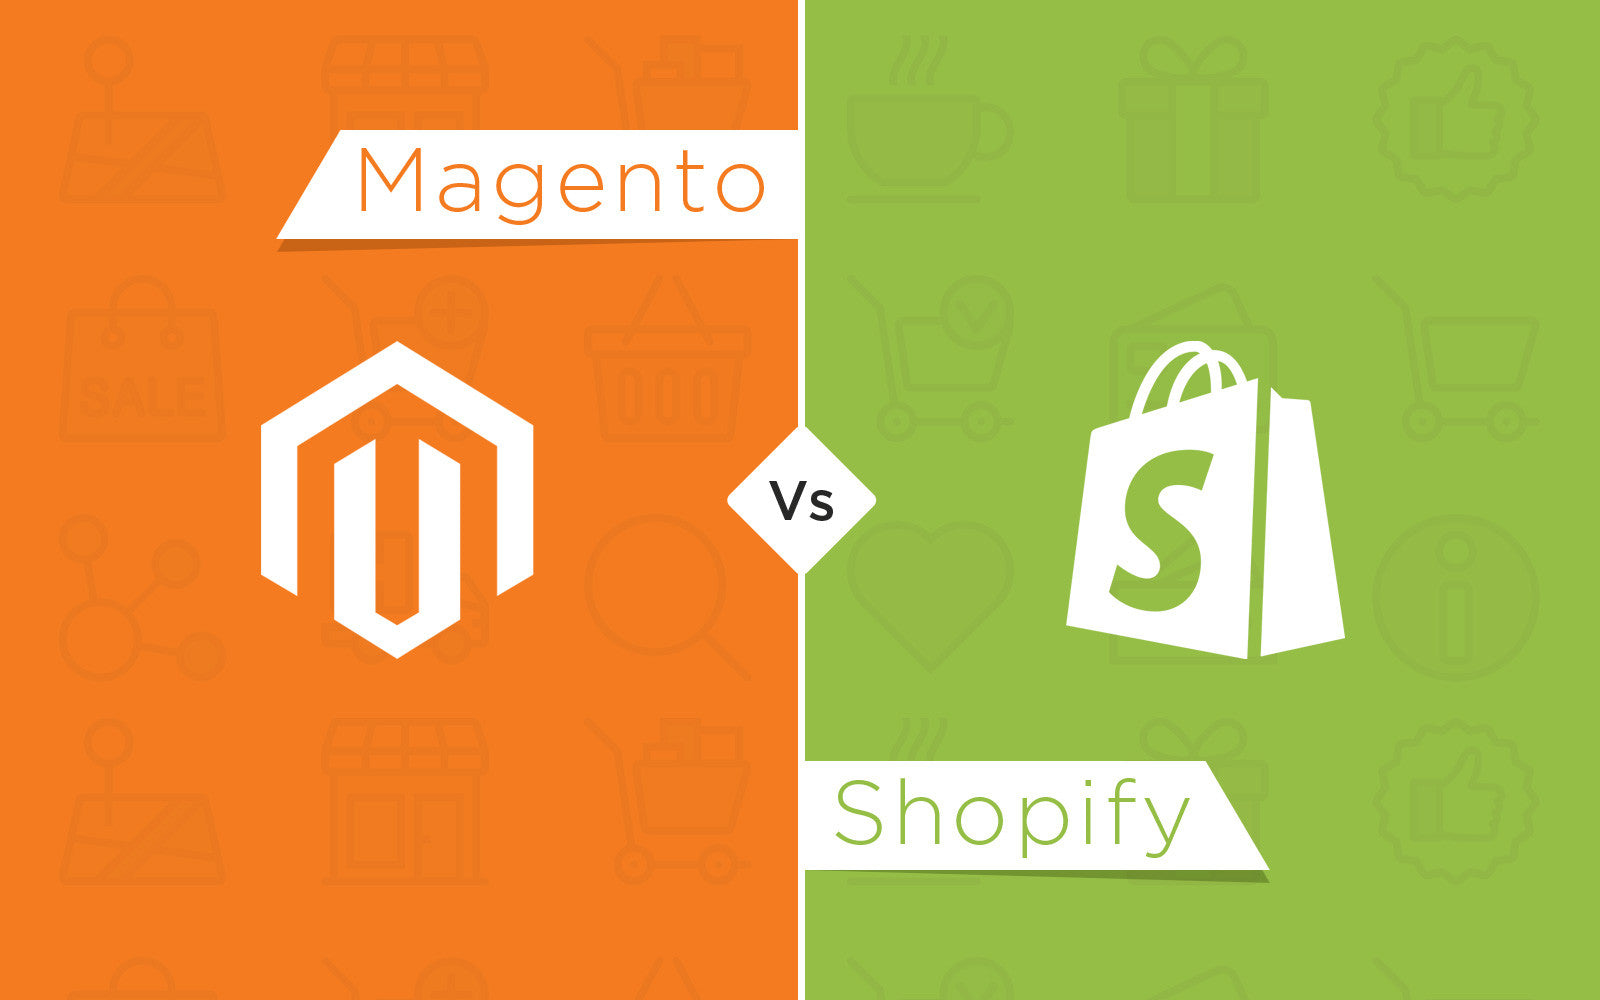 Magento Vs Shopify – Which One Should You Use?